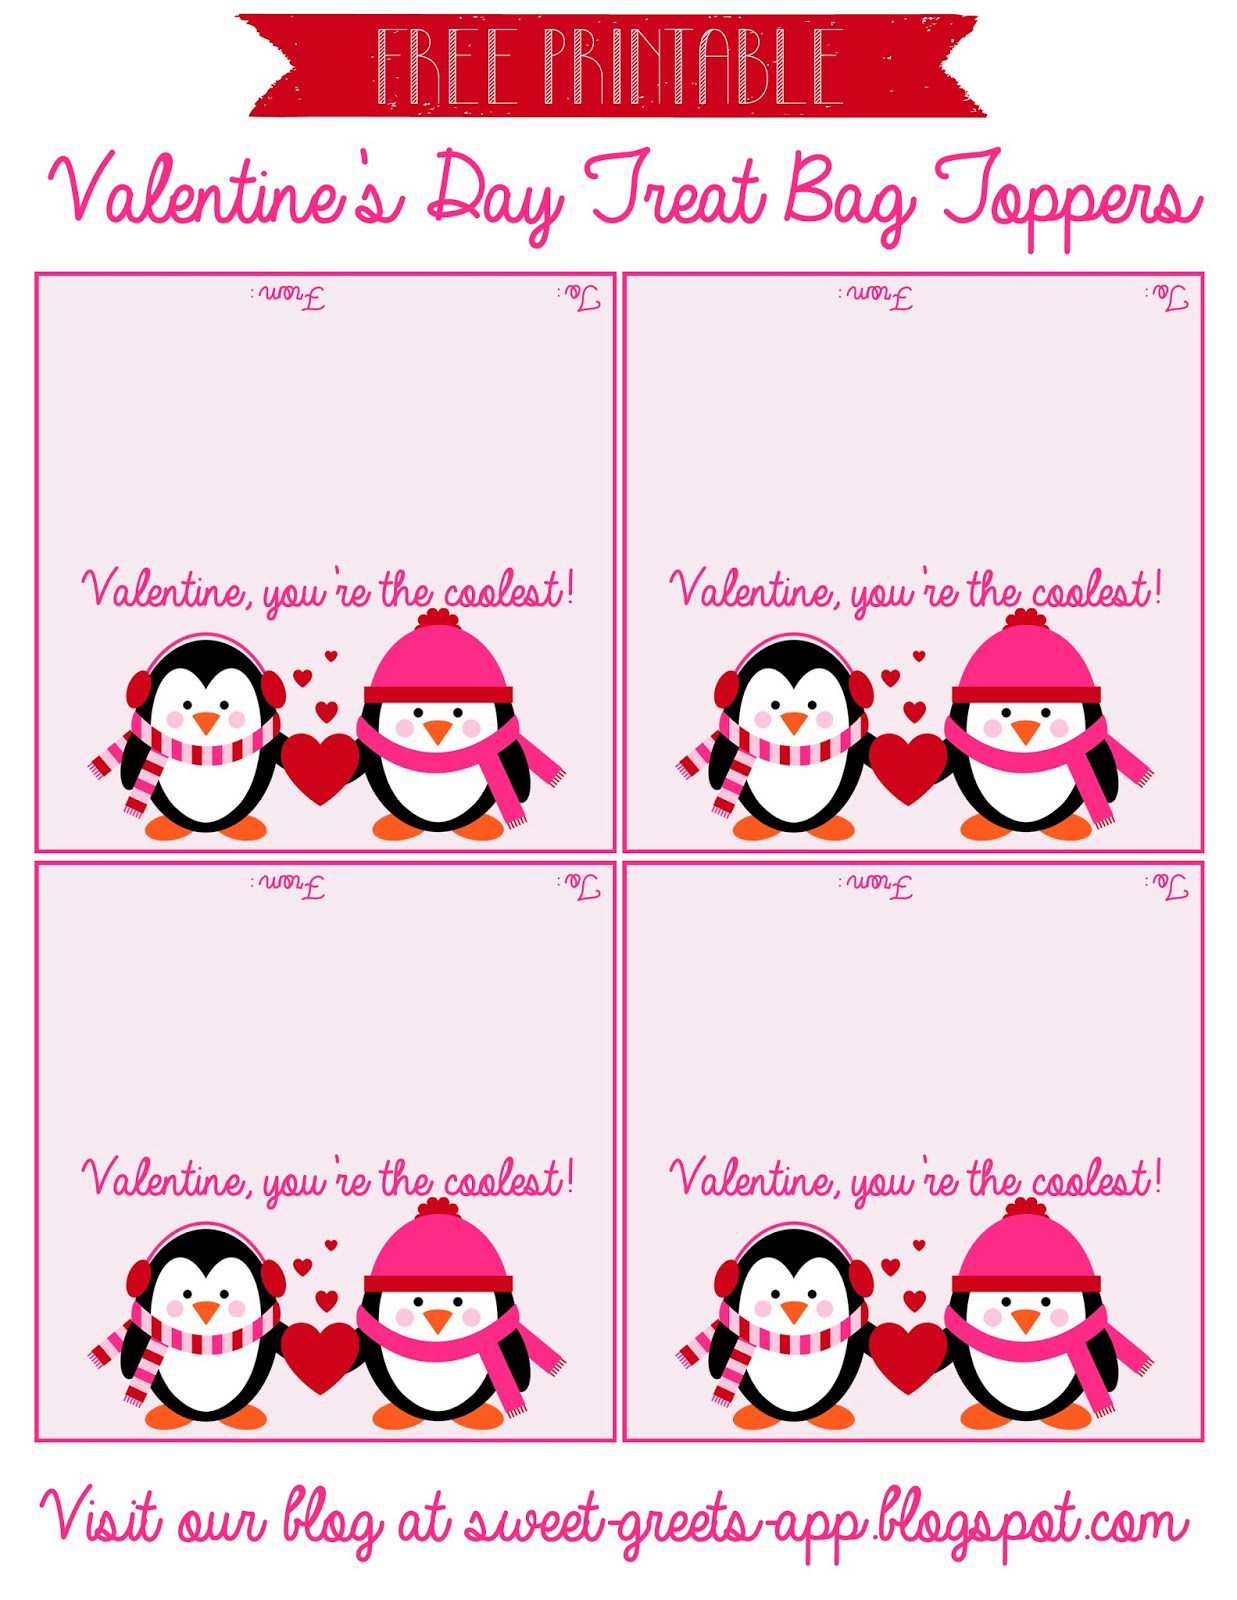 graphic about Free Printable Treat Bag Toppers identify Cute Nothings: Totally free Printable Valentines Working day Deal with Bag Toppers